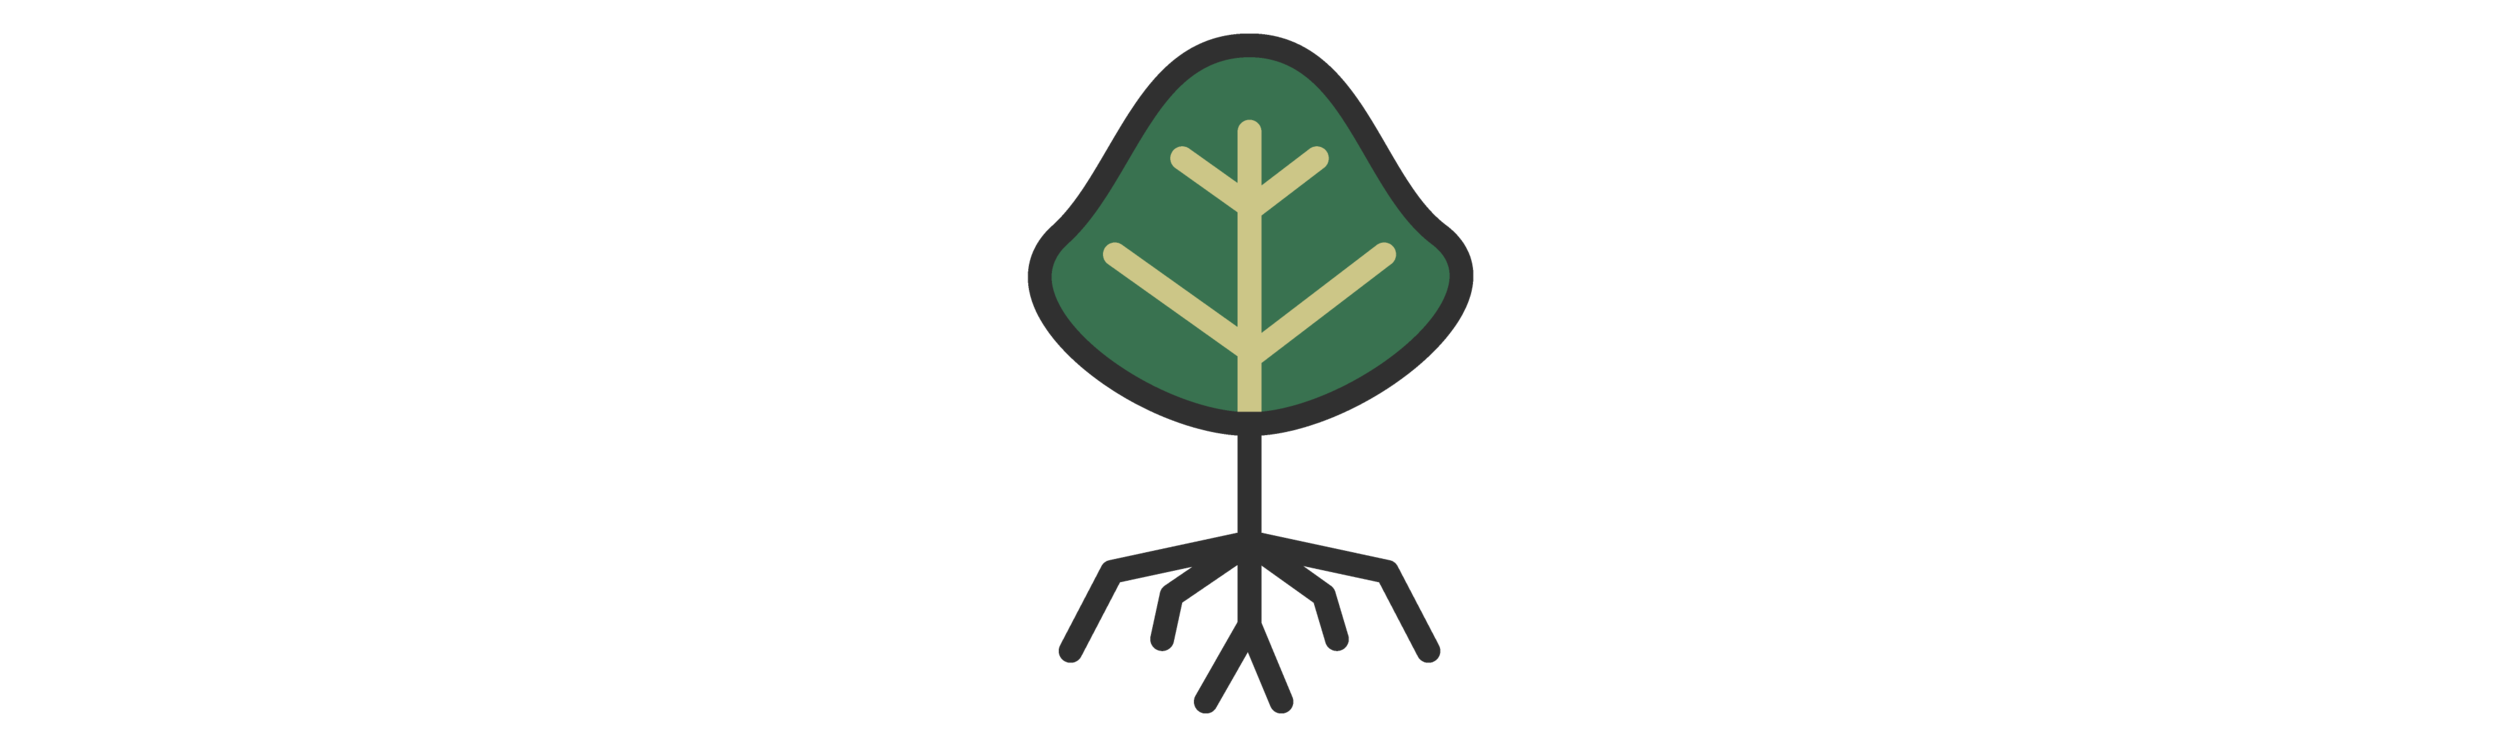 icon-Tree-Roots.png